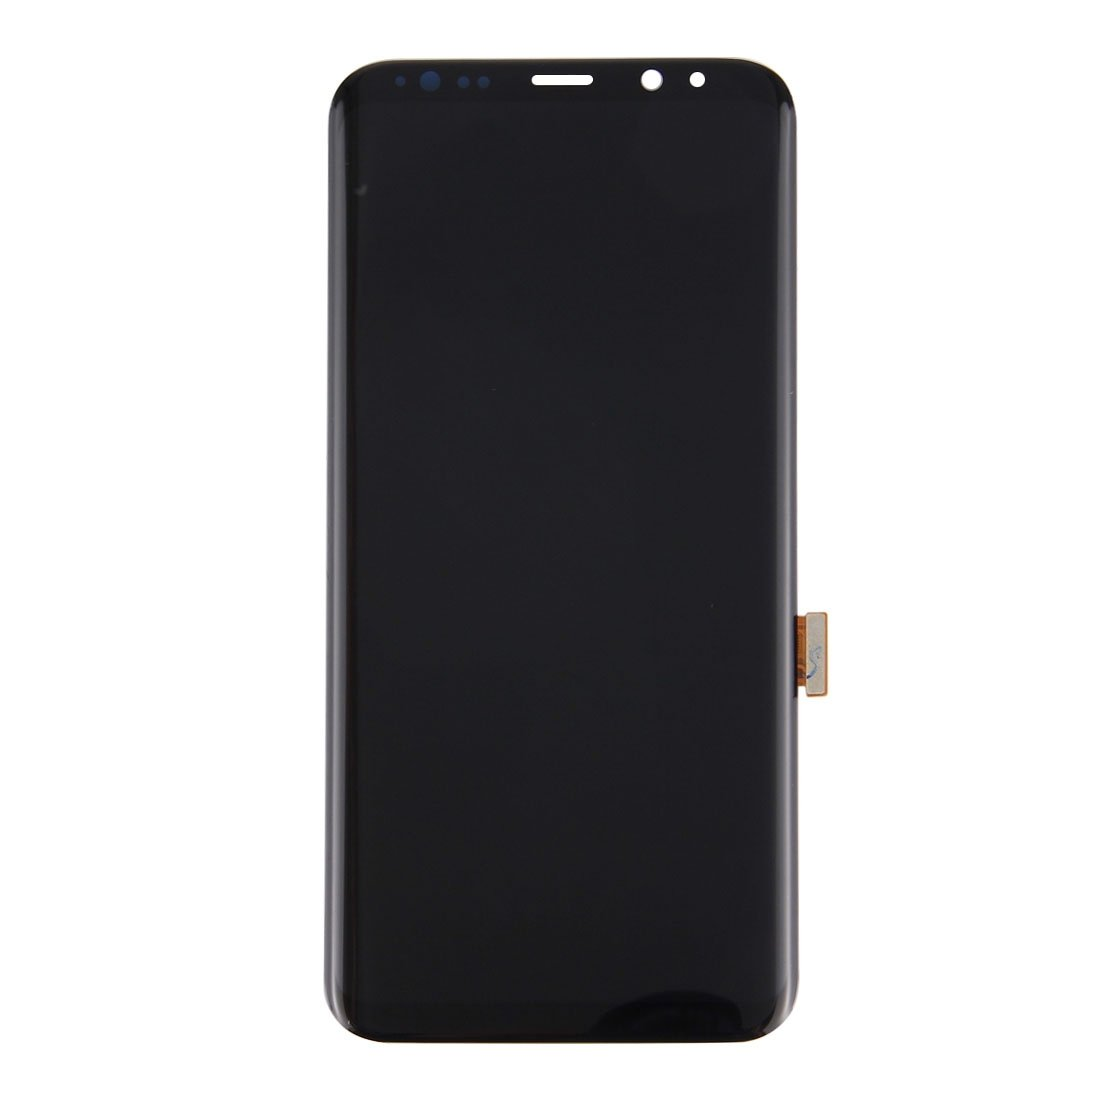 WANGYING Wangying New LCD Display + Touch Panel for Galaxy S8+ / G955 / G955F / G955FD / G955U / G955A / G955P / G955T / G955V / G955R4 / G955W / G9550(Black) (Color : Black)